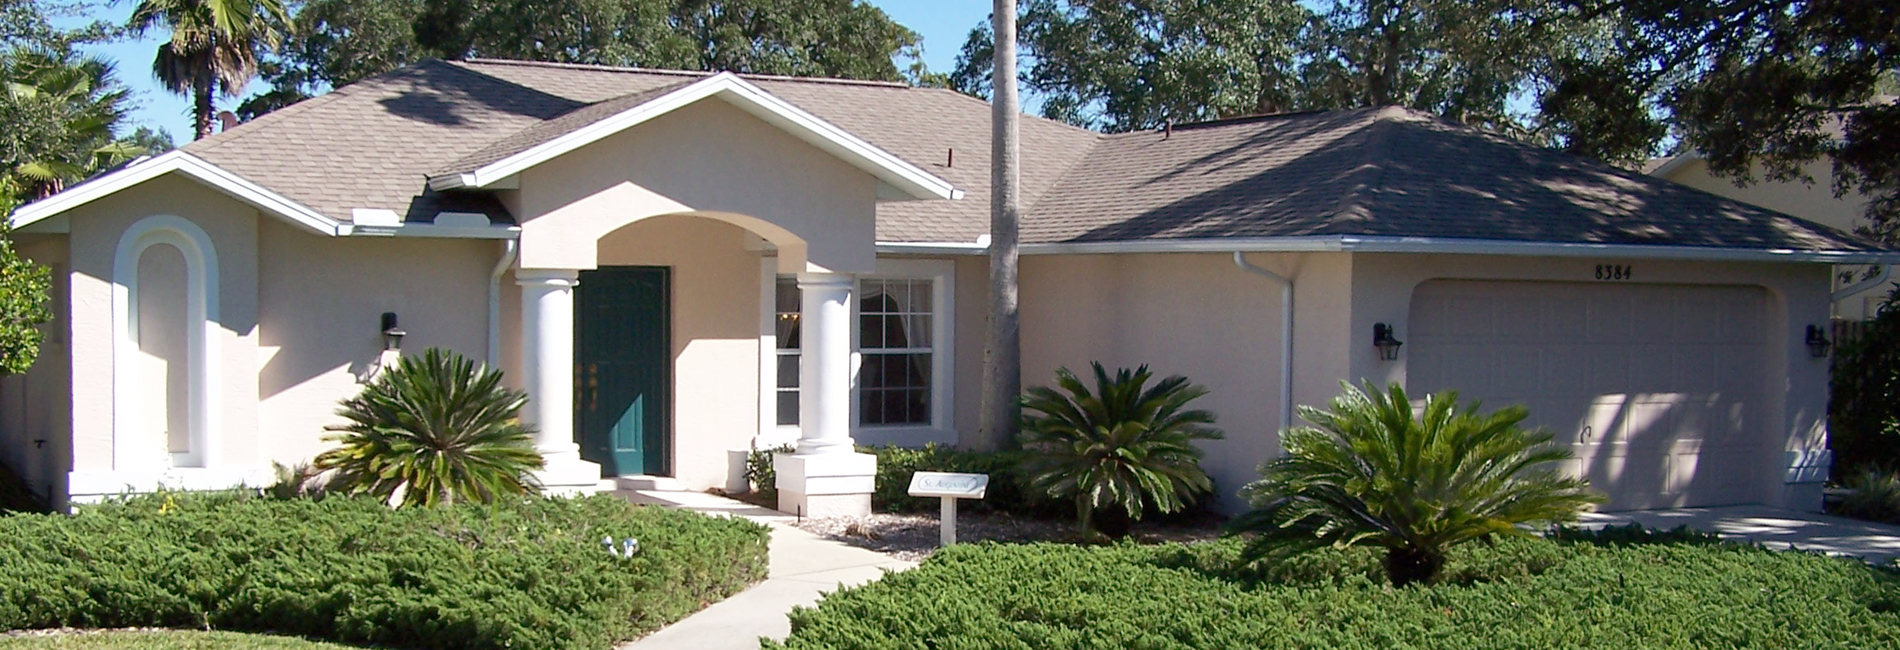 The St. Augustine Artistic Home